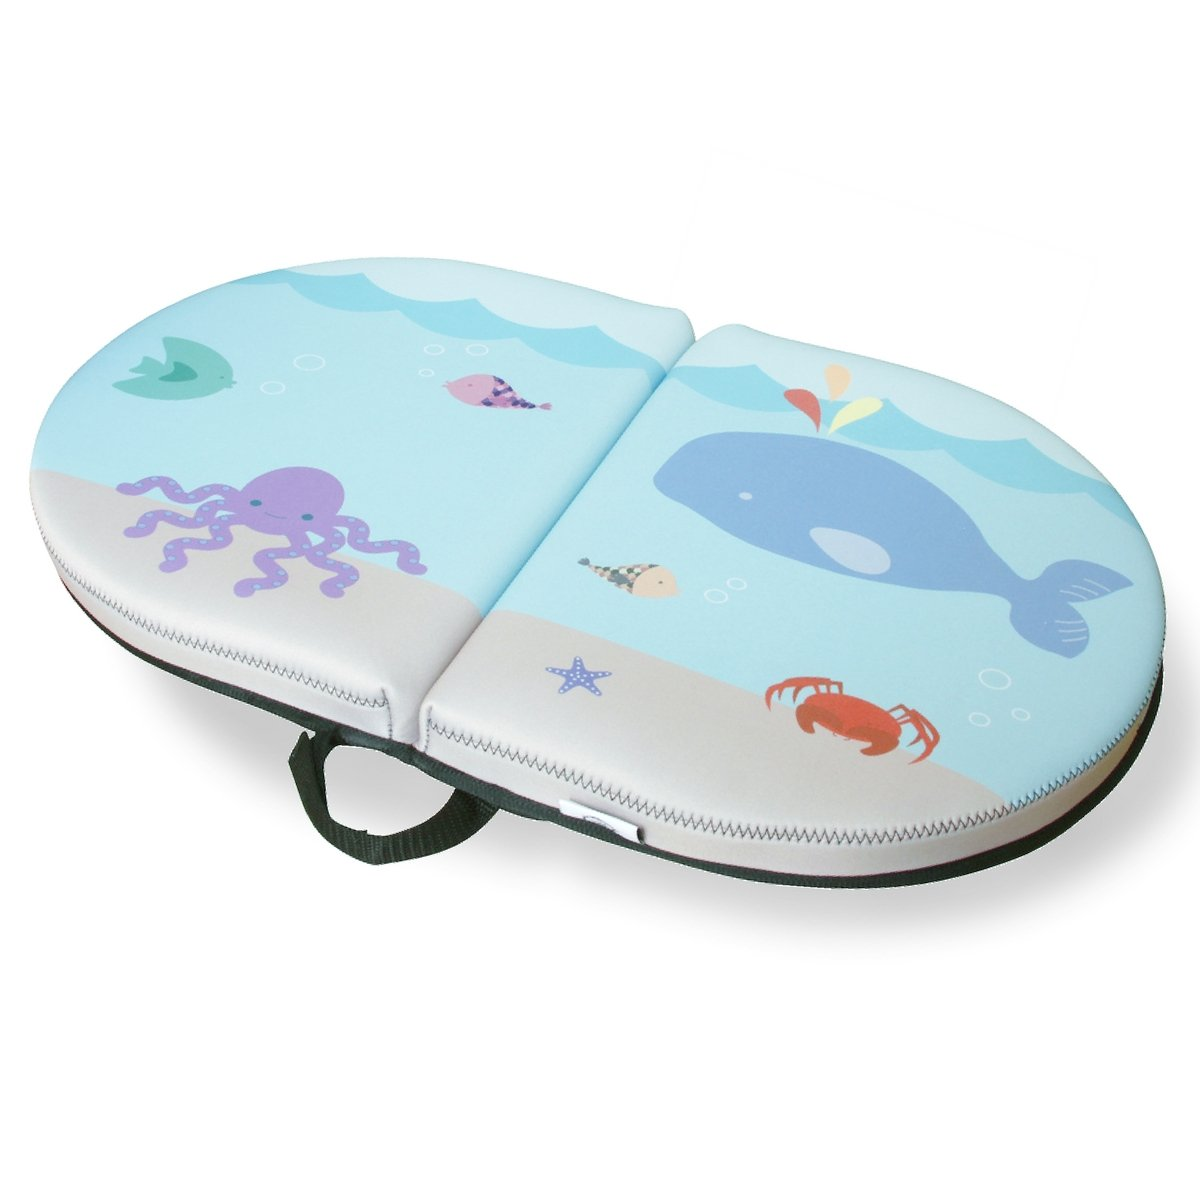 Blue Whale Baby Bath Kneeler - PAD Cushions & Supports Knees for Longer Tub Time, 22'' Extra-Wide 1.5'' Thick & Cushy Foam, Non-Slip Safety Backing, Easy to Clean Removable Cover (Blue)